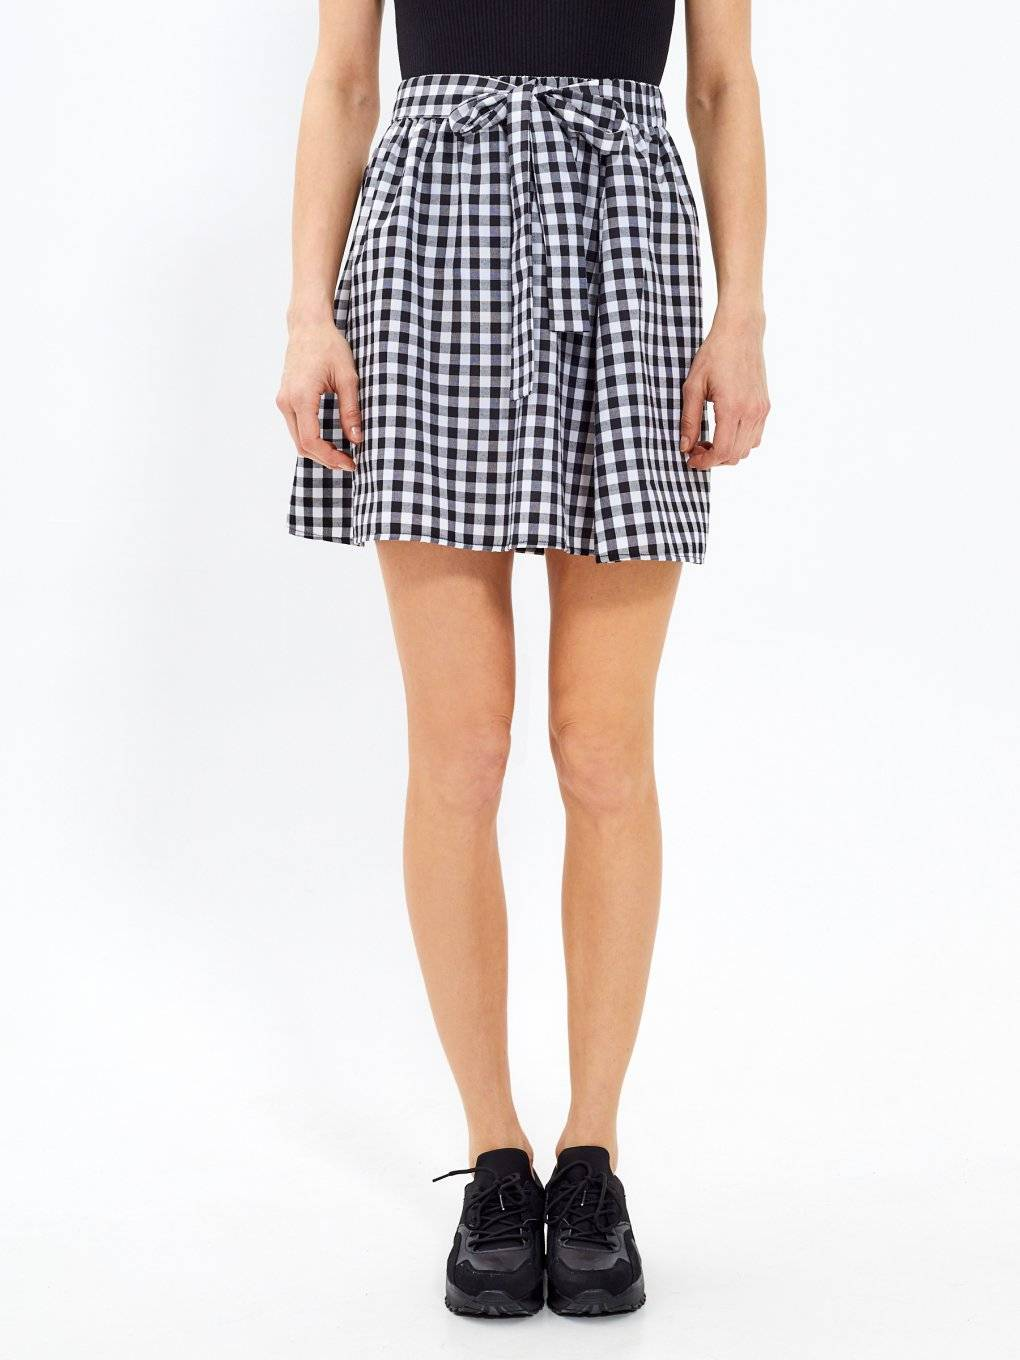 Gingham skirt with decorative bow